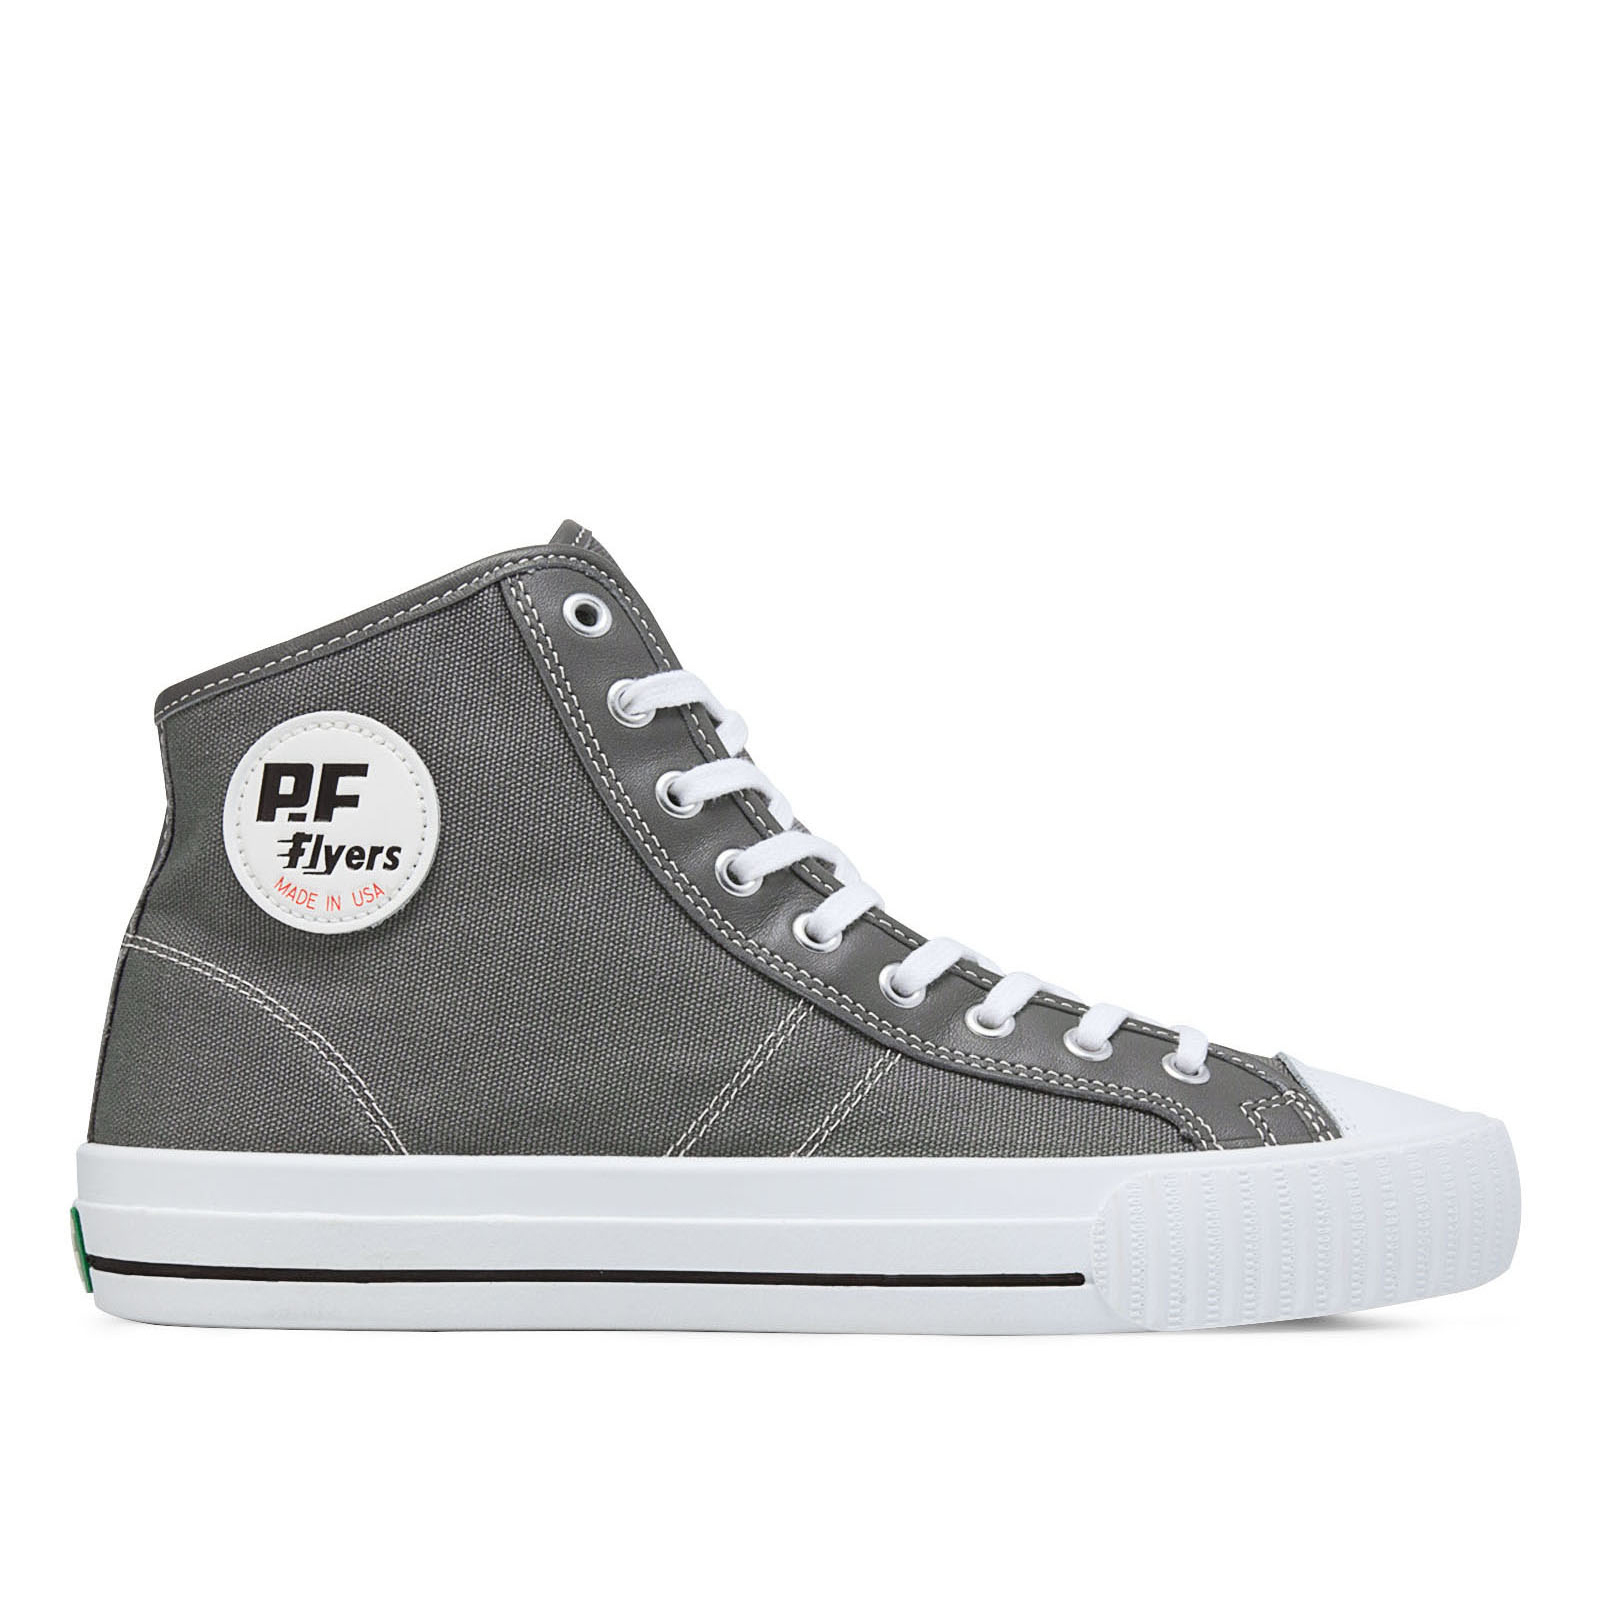 5s0rdmuao7 pf flyers made in usa center hi 0 original